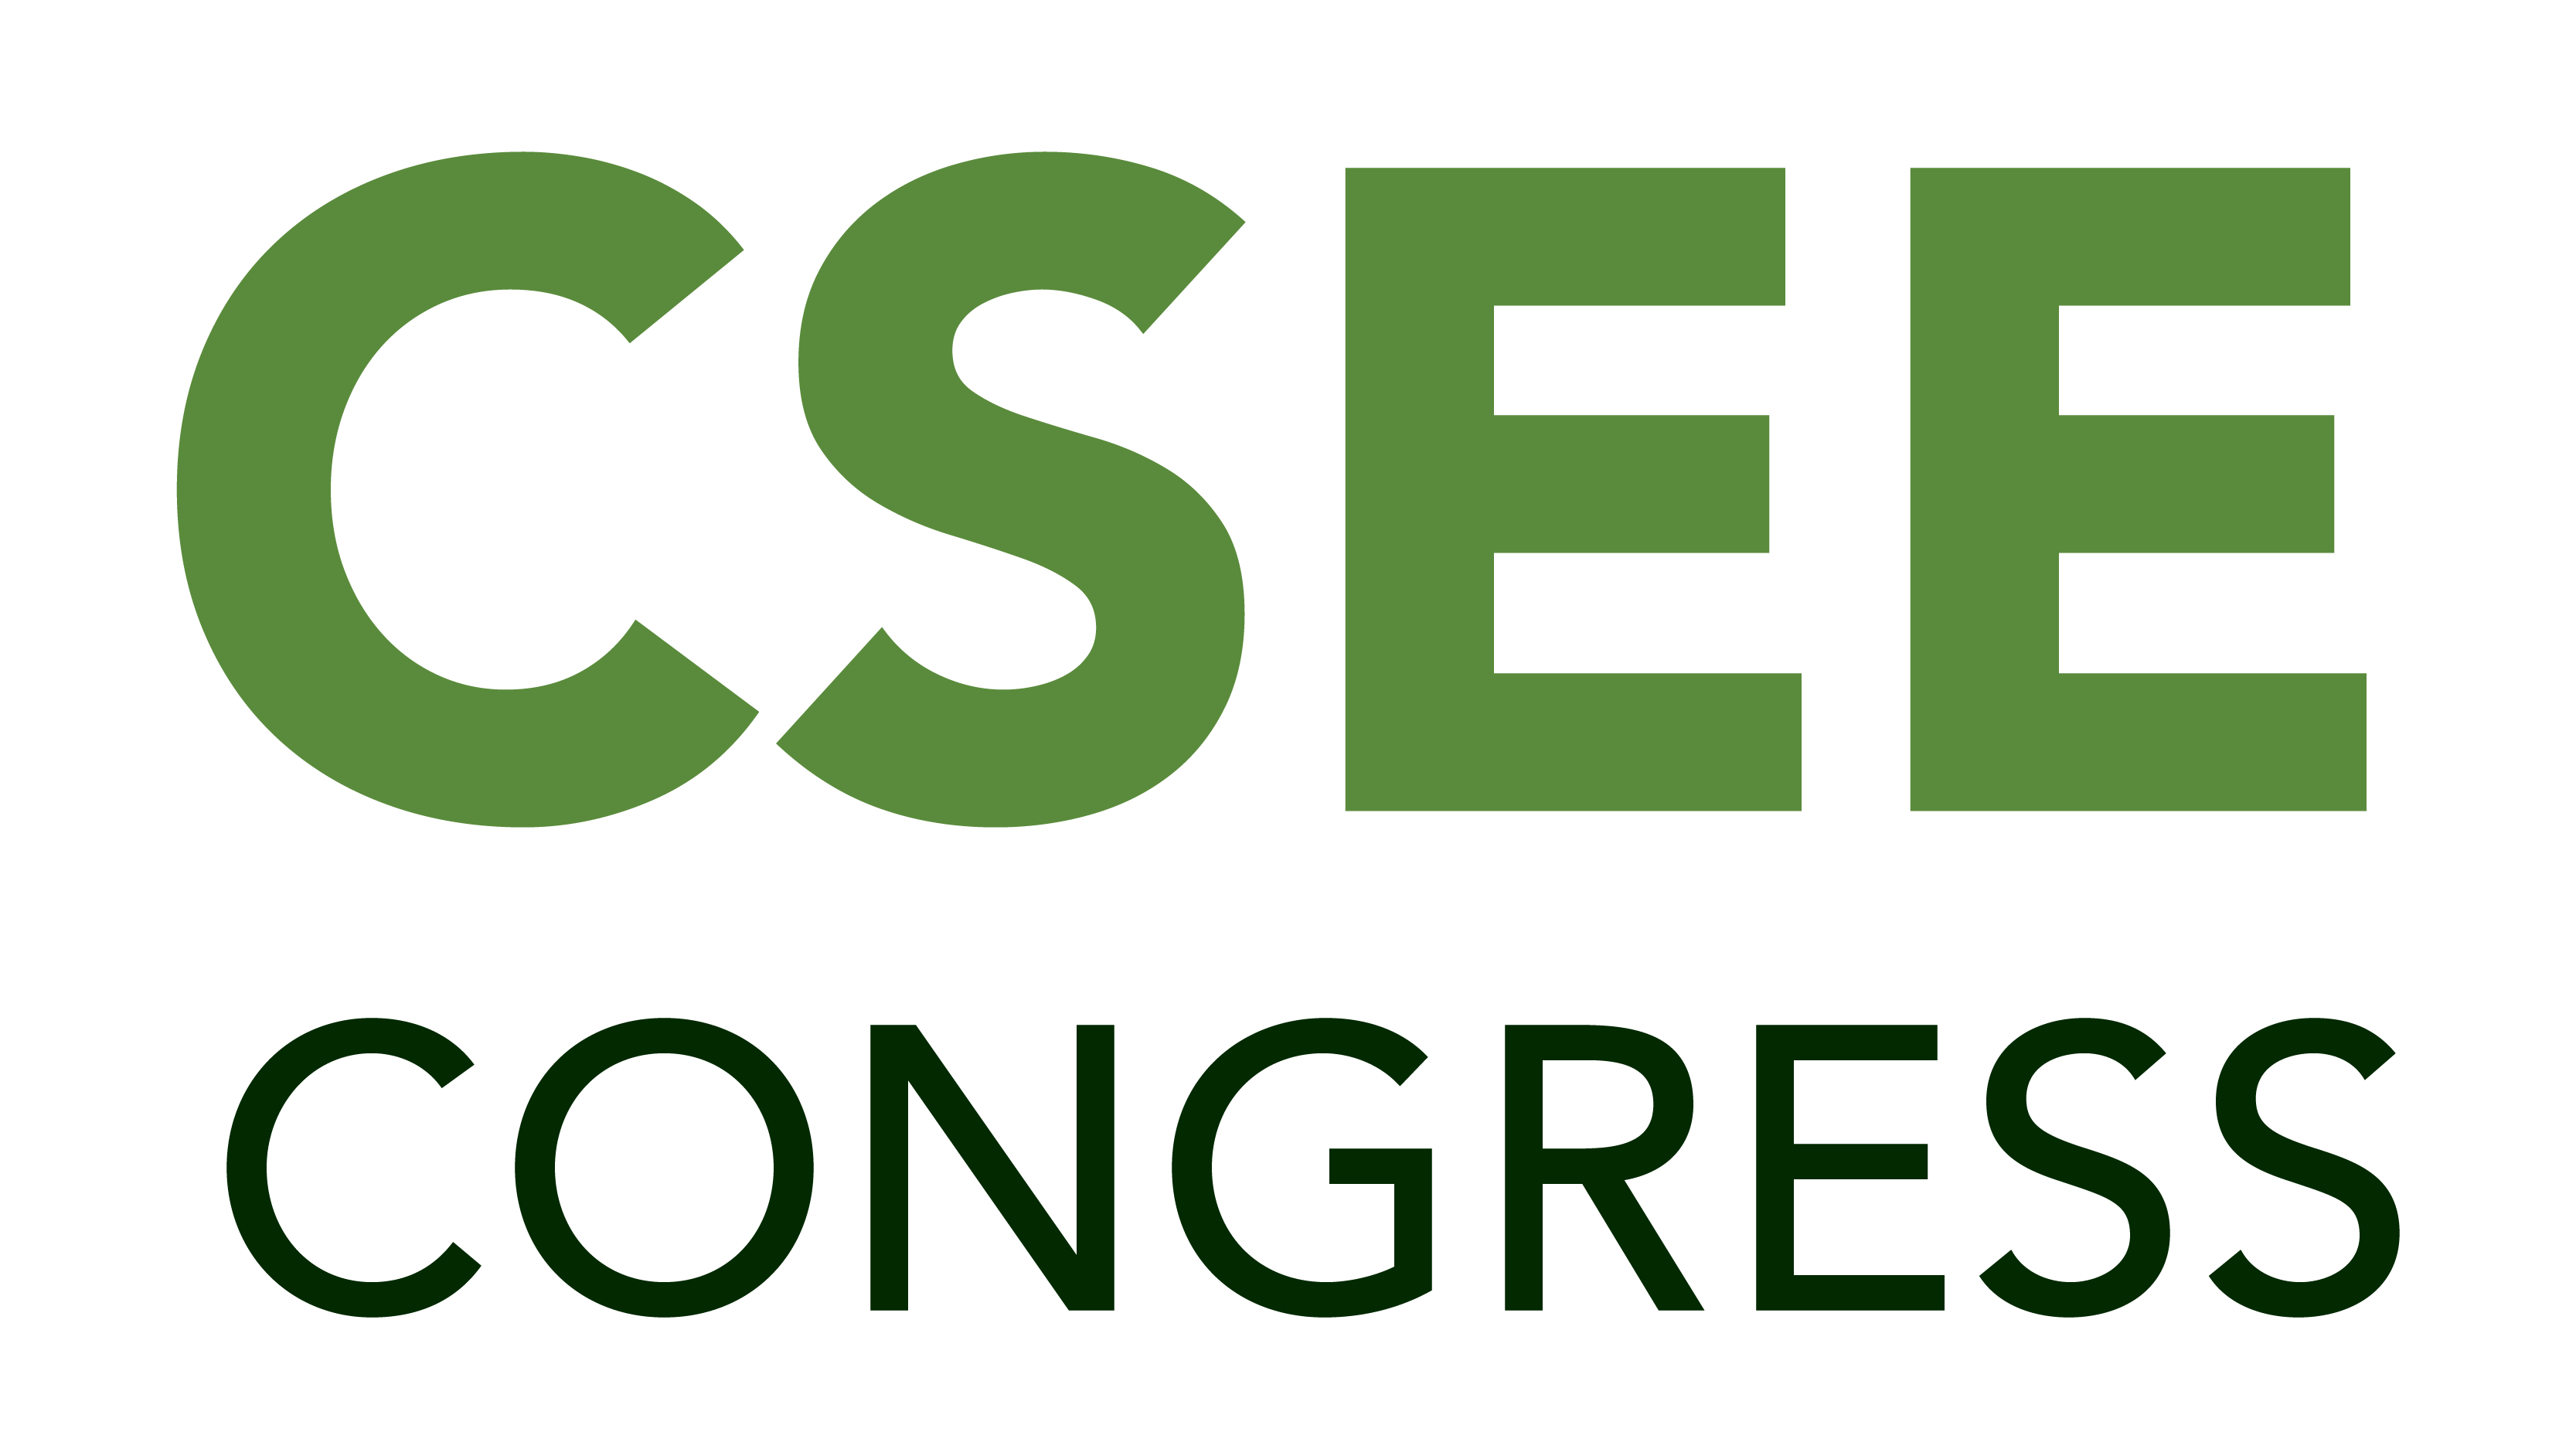 6th World Congress on Civil, Structural, and Environmental Engineering, March, 2021 | London, England